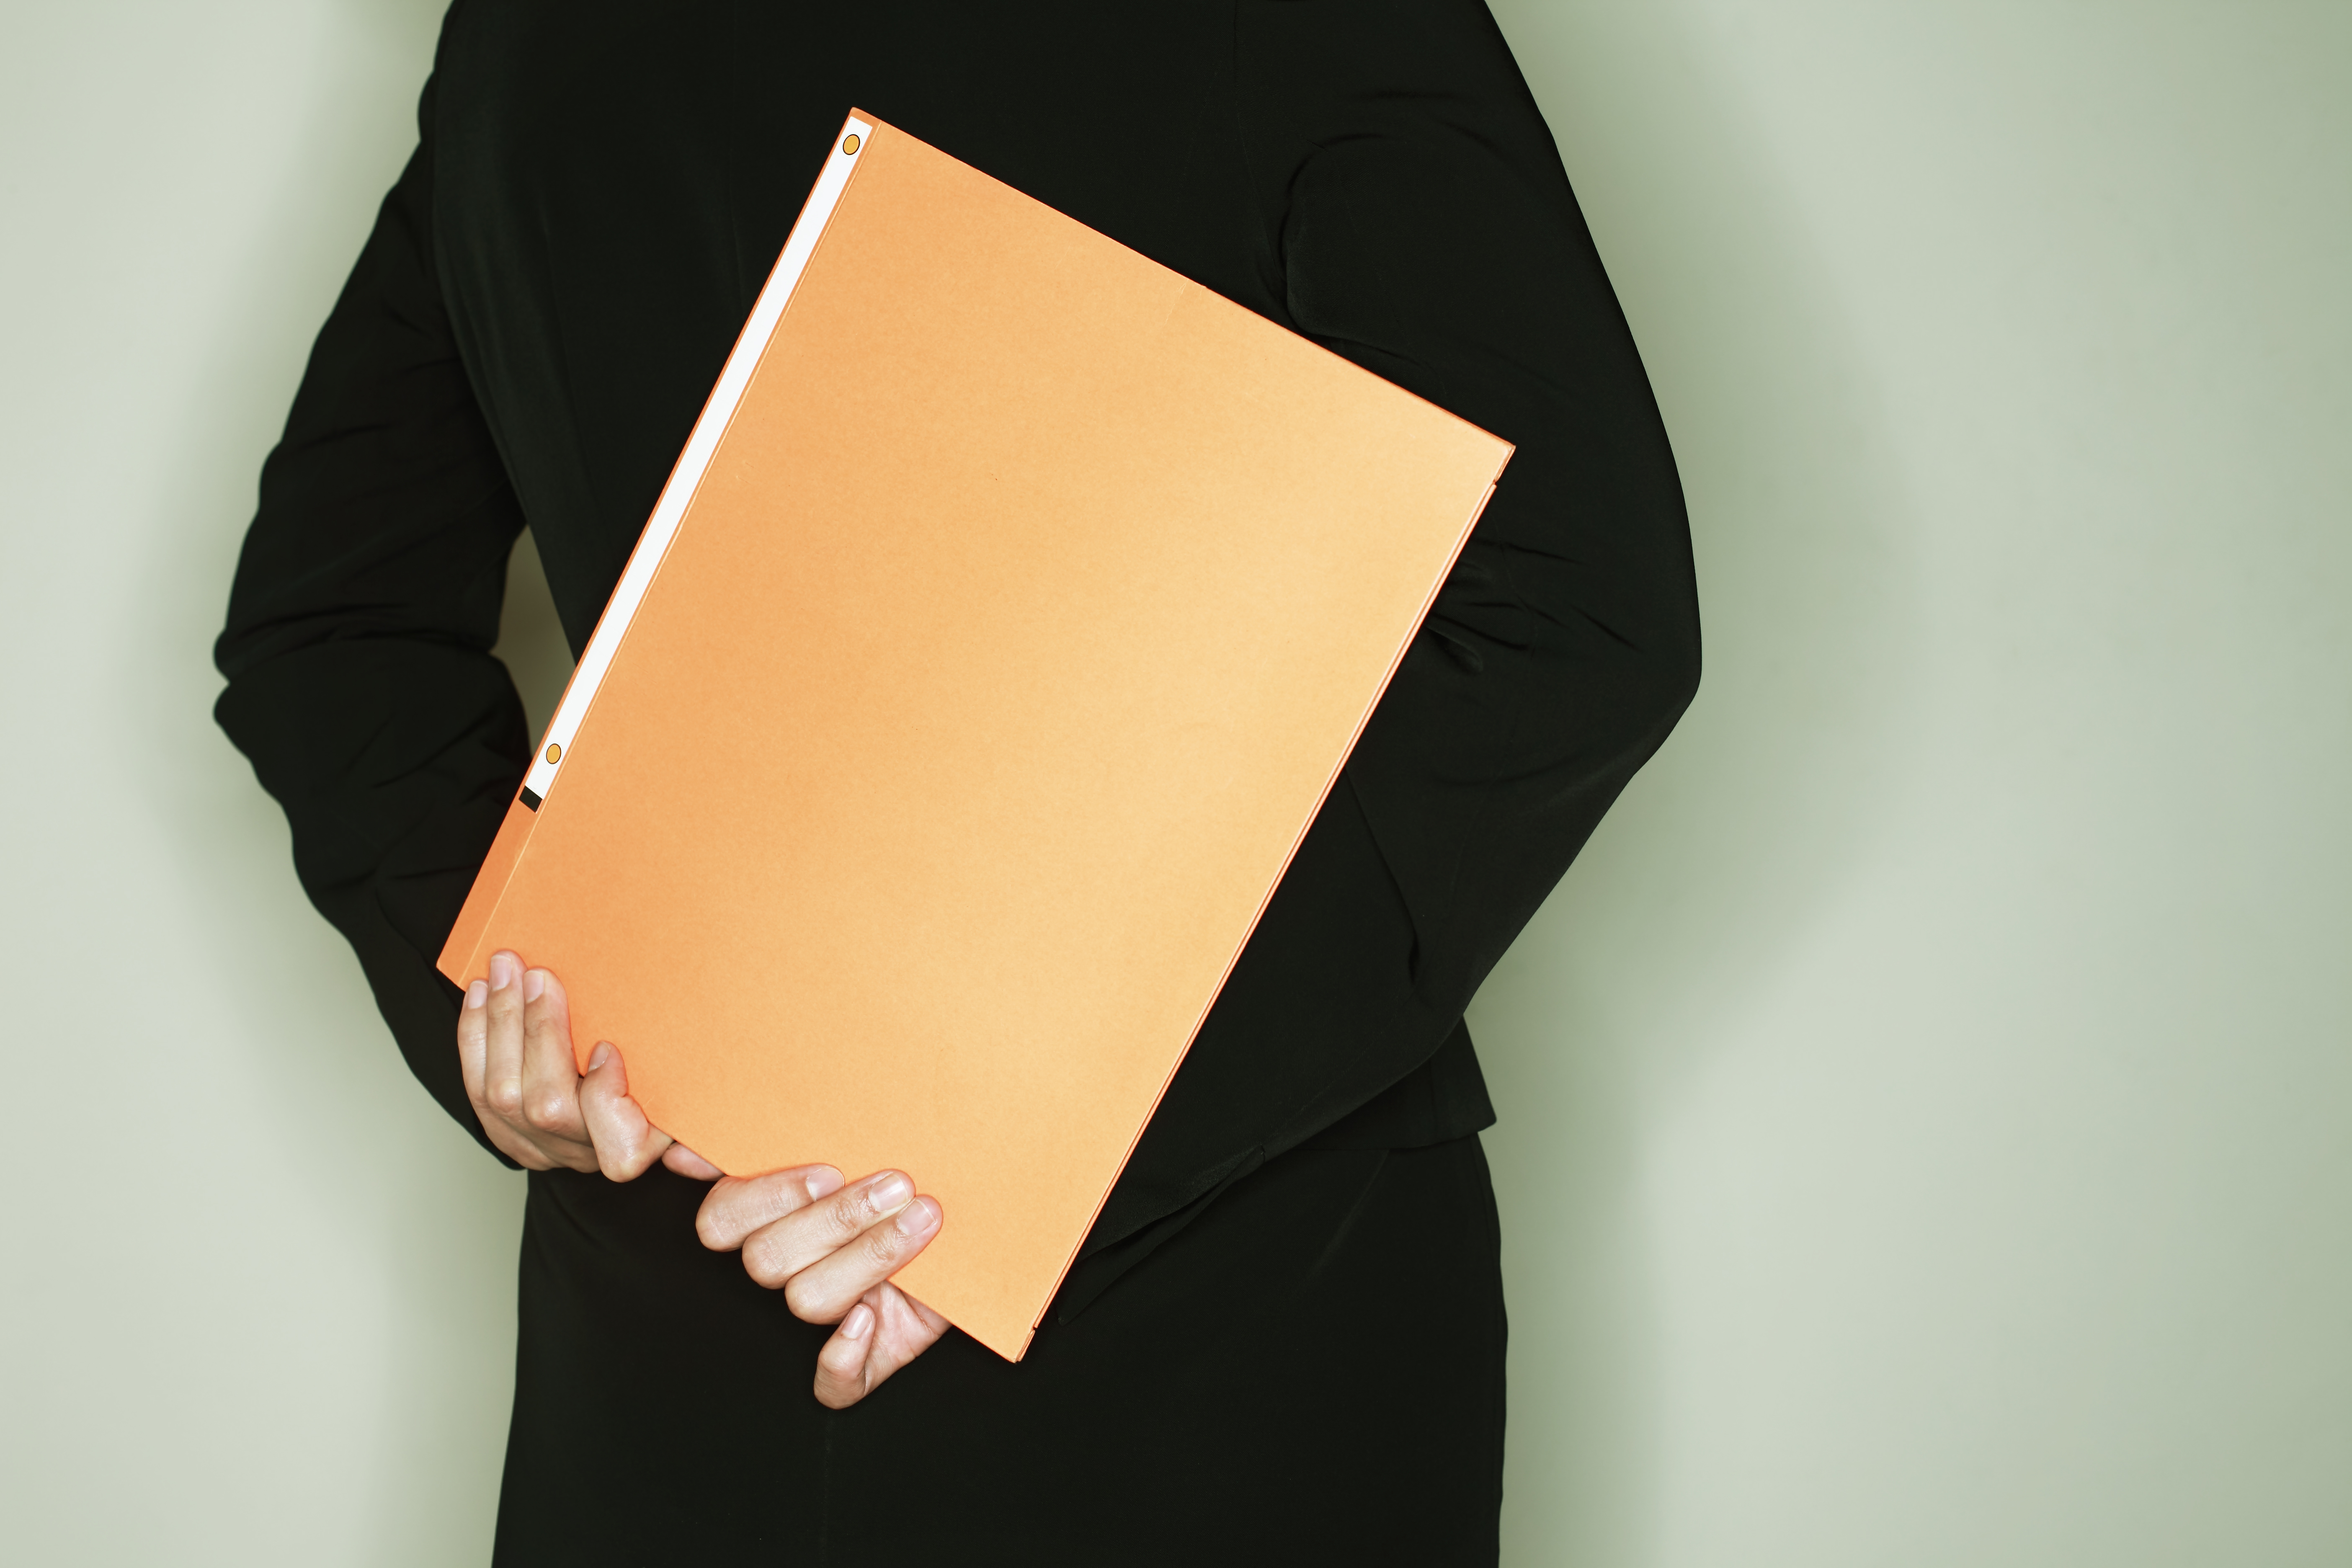 midle age businesswoman with a binder,rear view